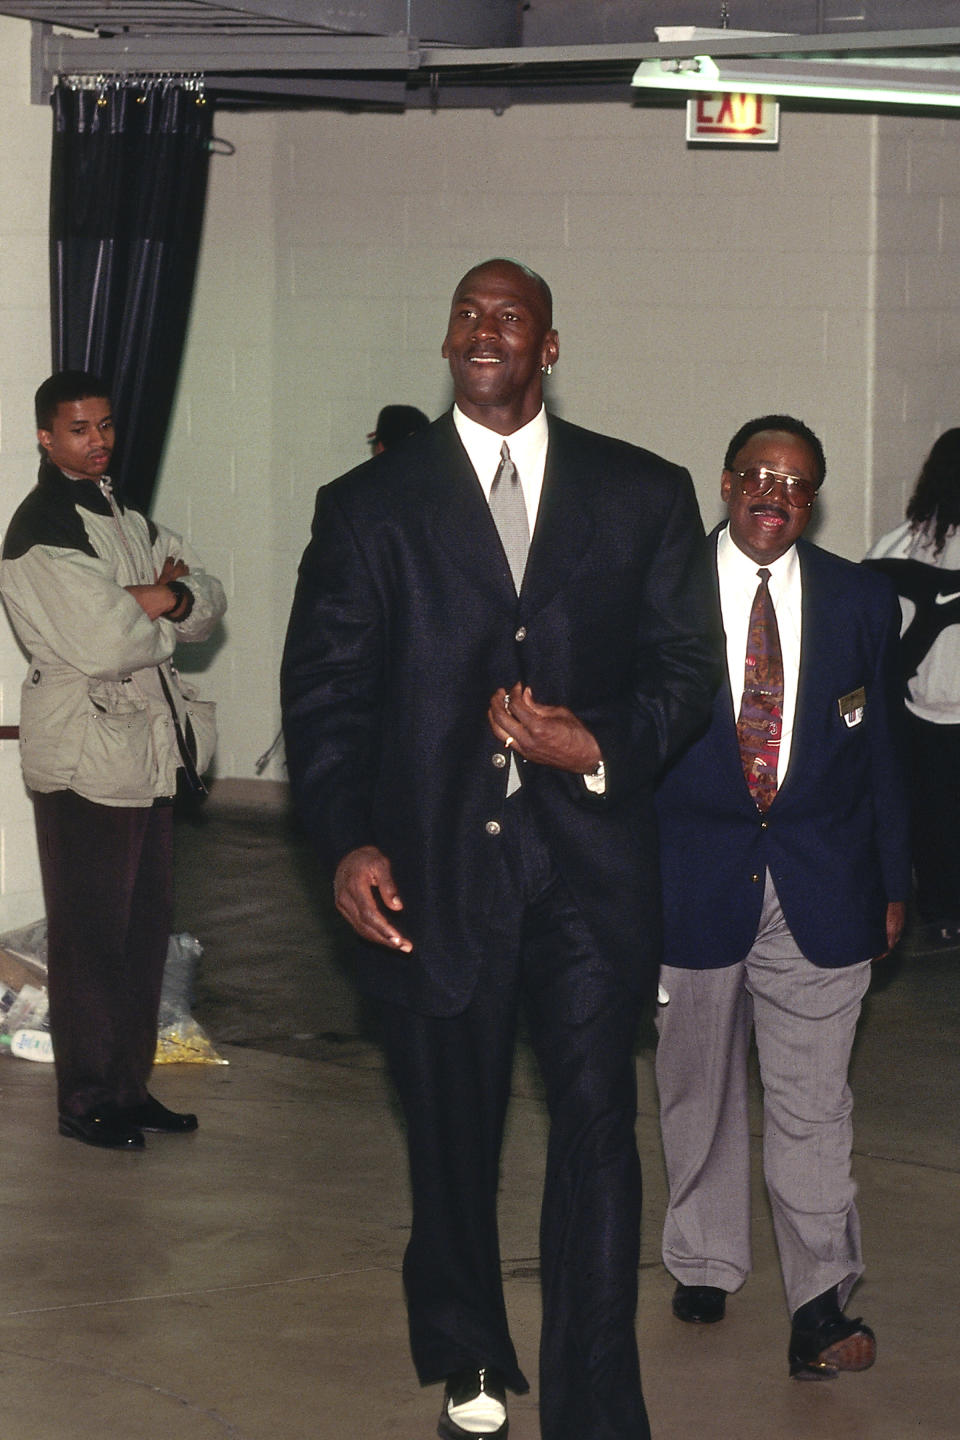 Michael Jordan arrives at the arena before Game 5 of the 1997 Eastern Conference Finals against the Miami Heat on May 28, 1997, in Chicago, Illinois. (Photo by Steve Woltman/NBAE via Getty Images)